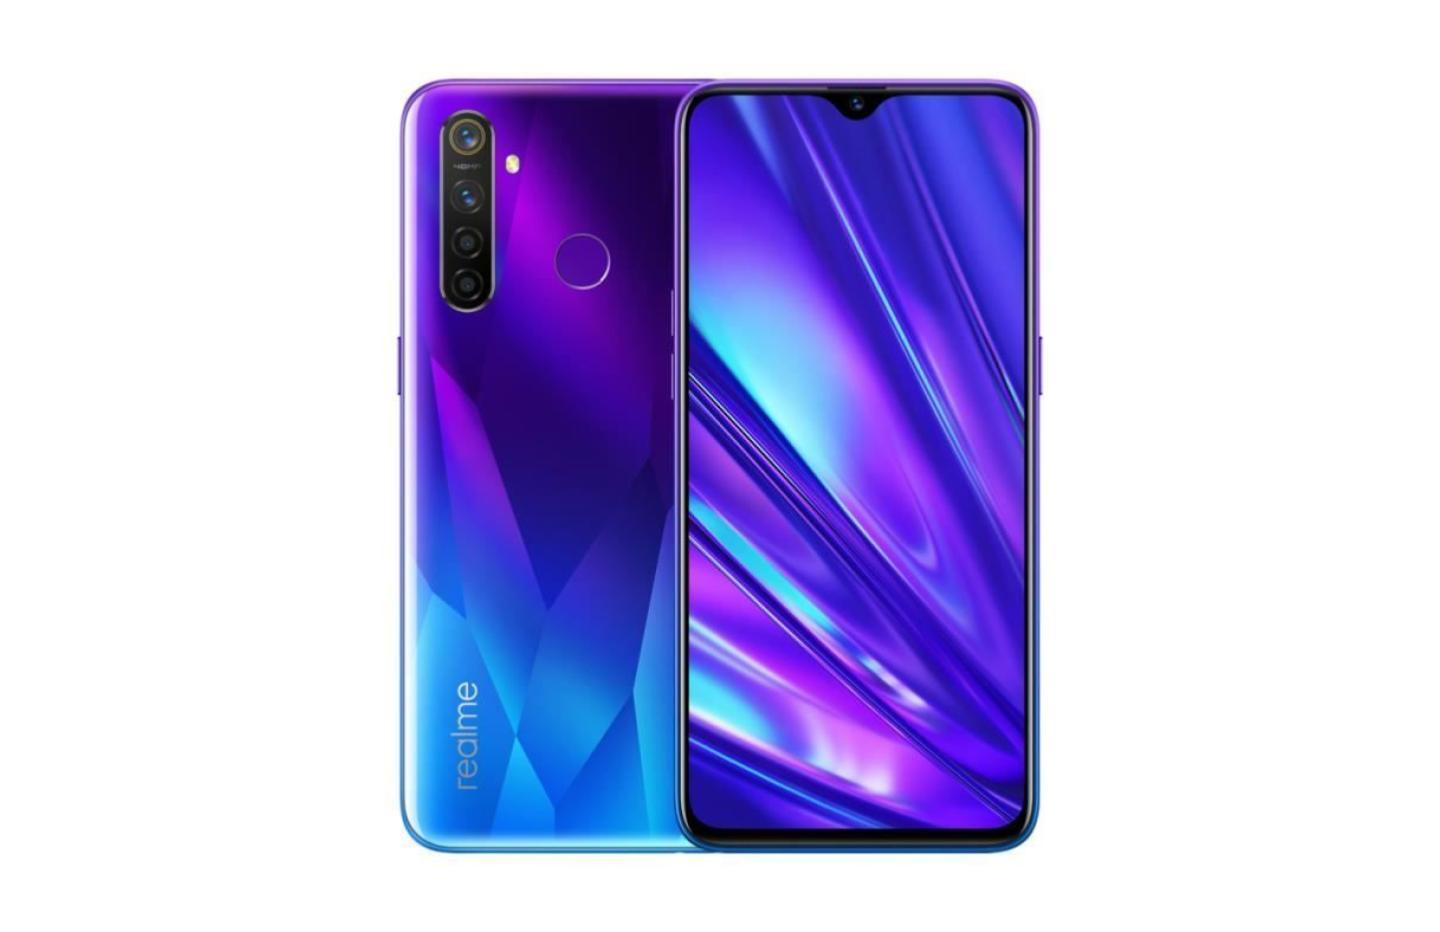 Realme 5 Pro : l'alternative au Redmi Note 8 est disponible à 183 euros